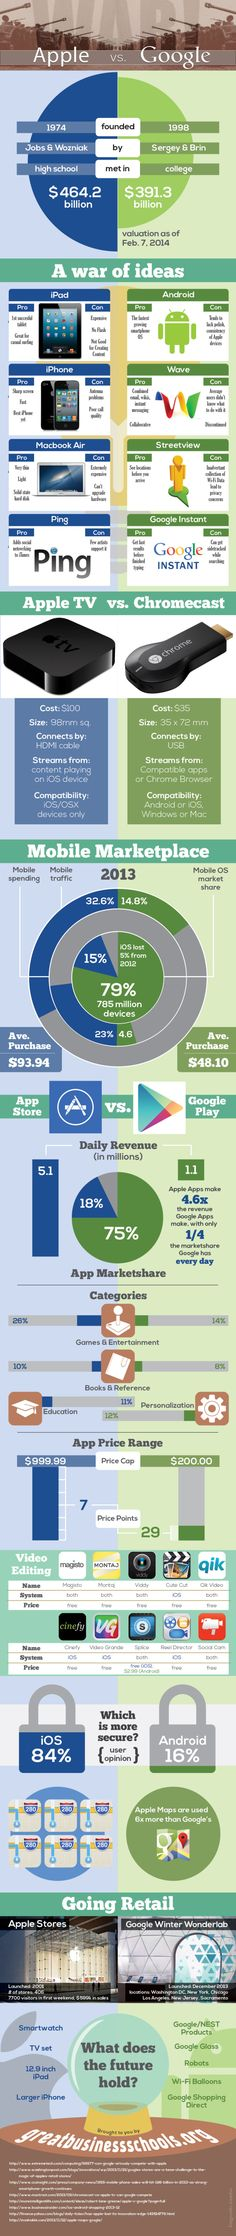 Apple Versus Google [INFOGRAPHIC] #Apple #Google